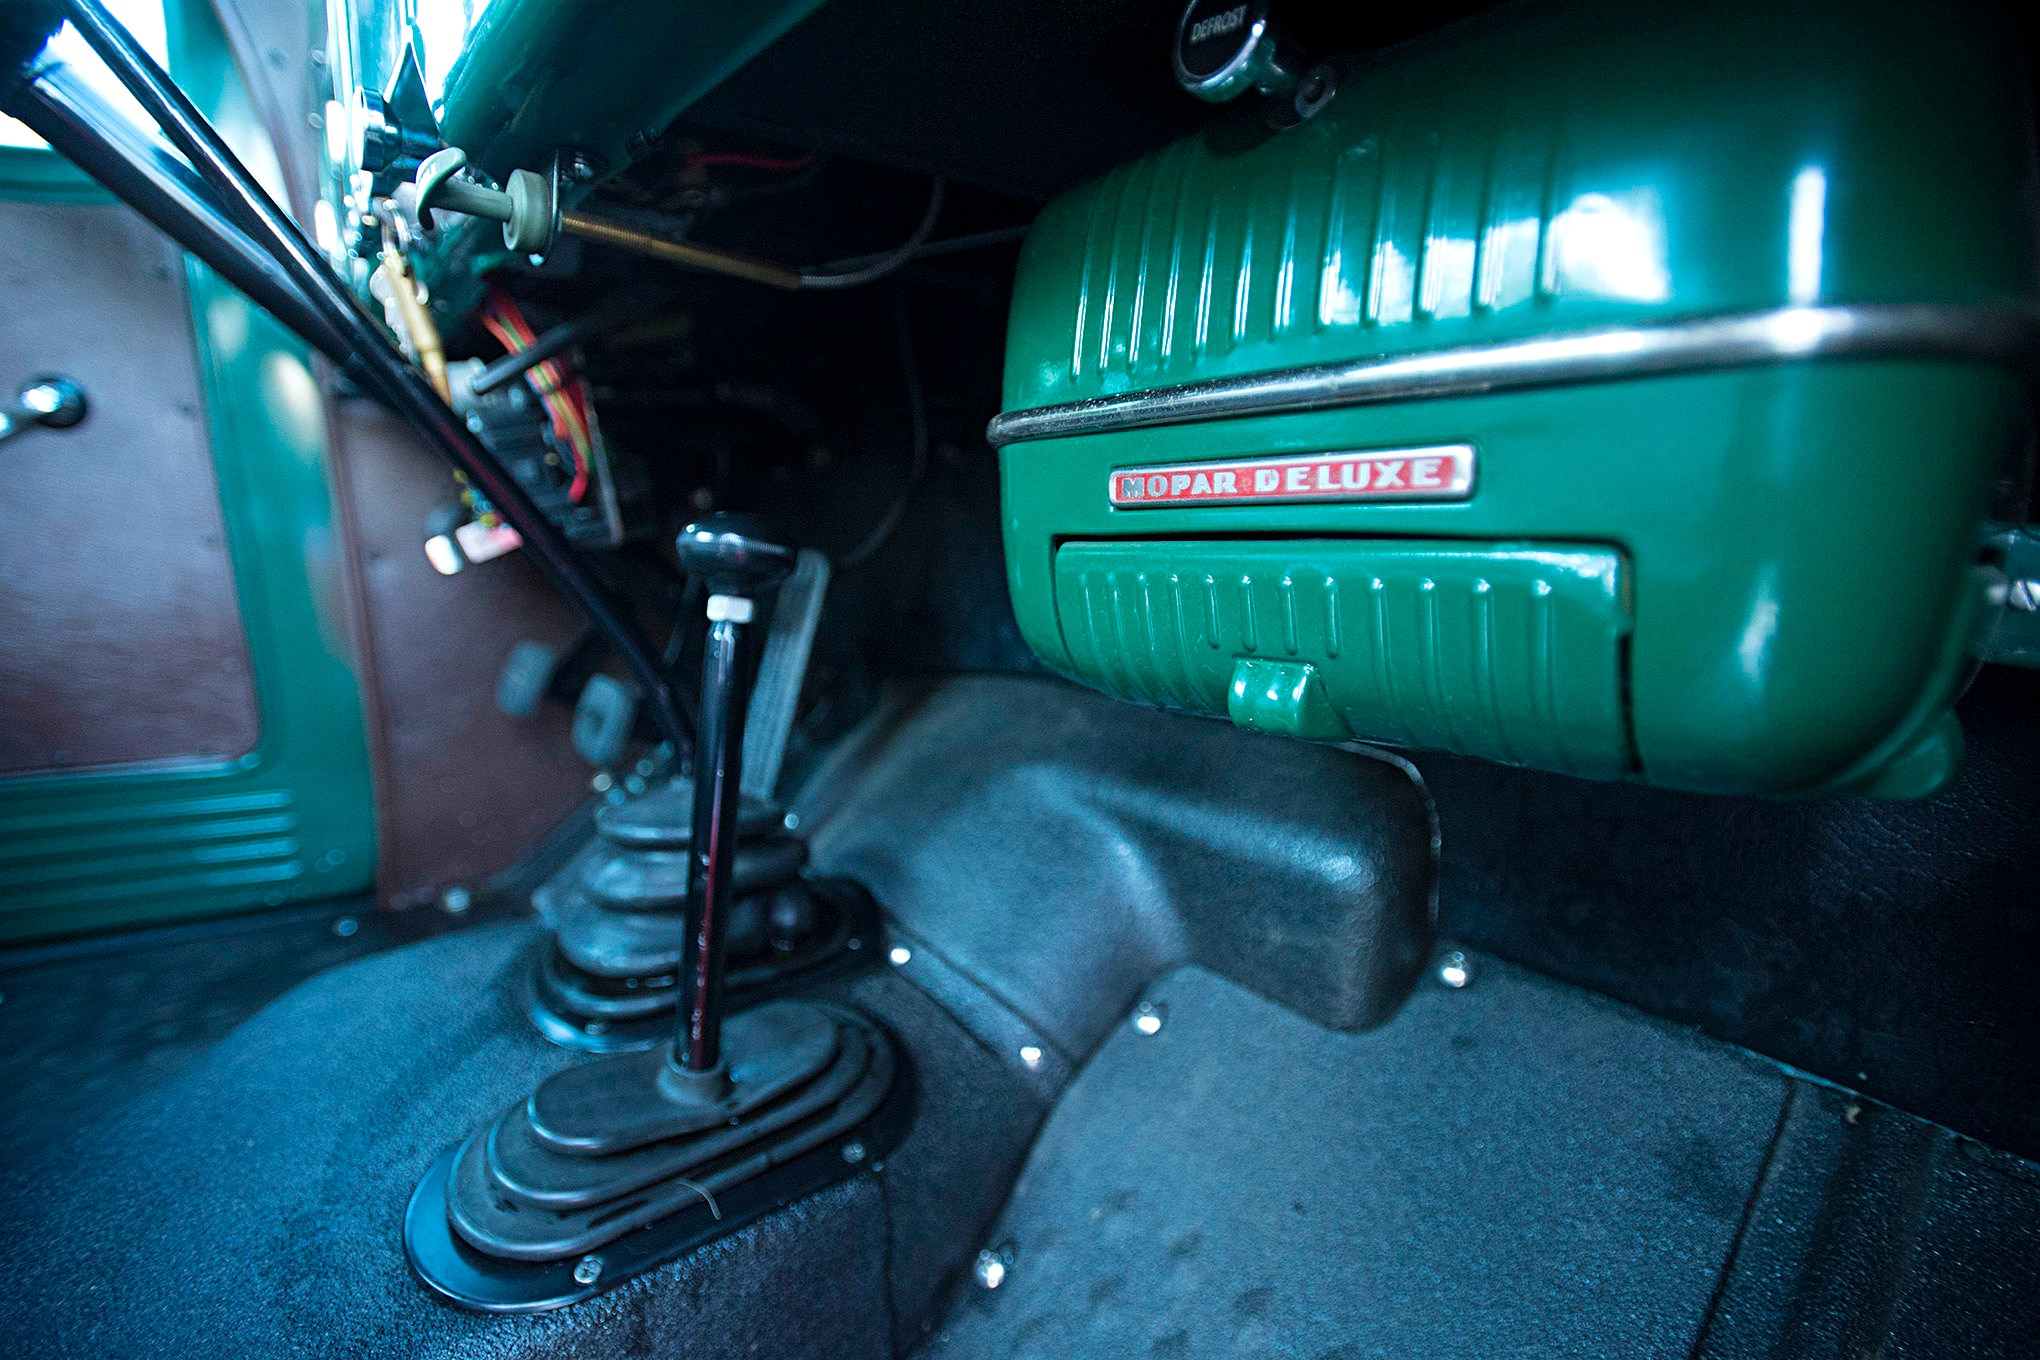 The interior is much less cluttered than it was in 1946, now with just a single transfer case lever and shifter mounted on the floor. A stock Power Wagon heater works great in the little cab even in the middle of winter. The floor is coated with Line-X for easy wash-and-clean.